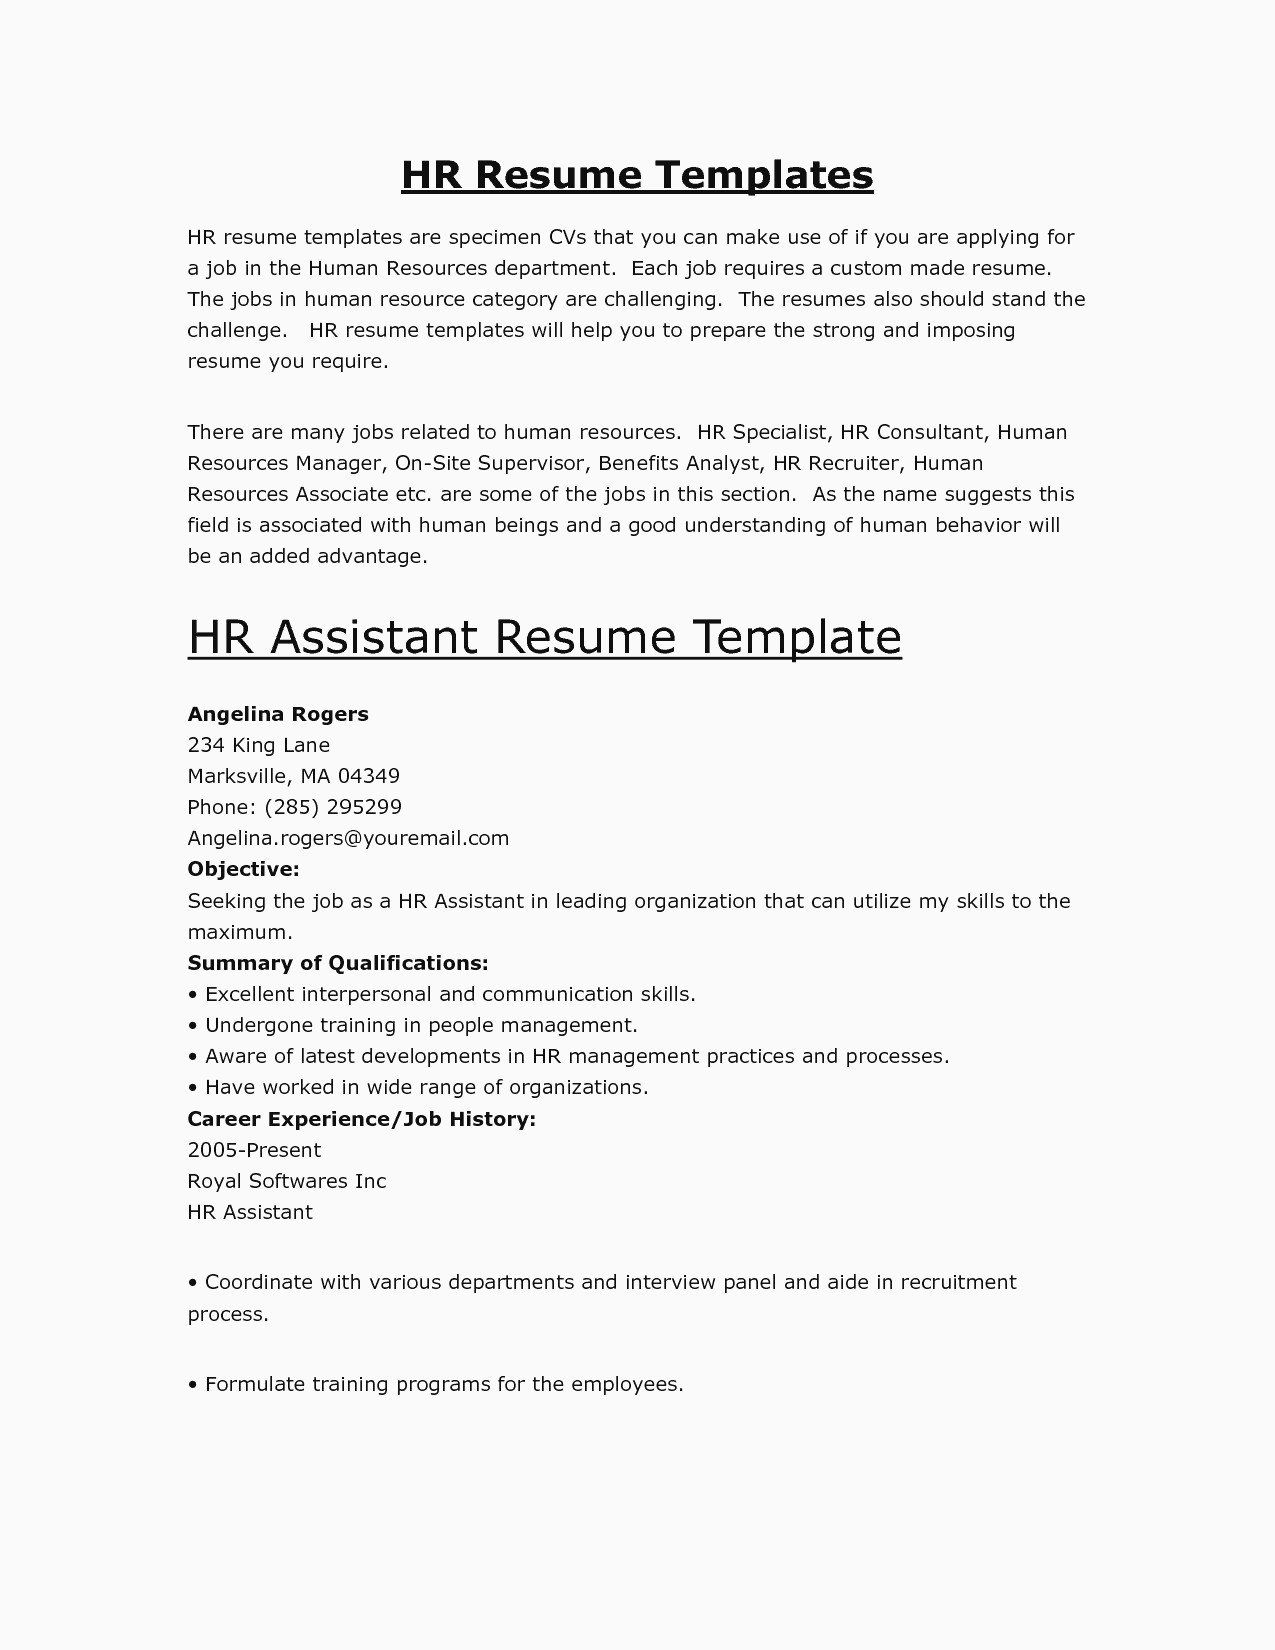 The Best Way to Start A Statement On Your Résumé is with